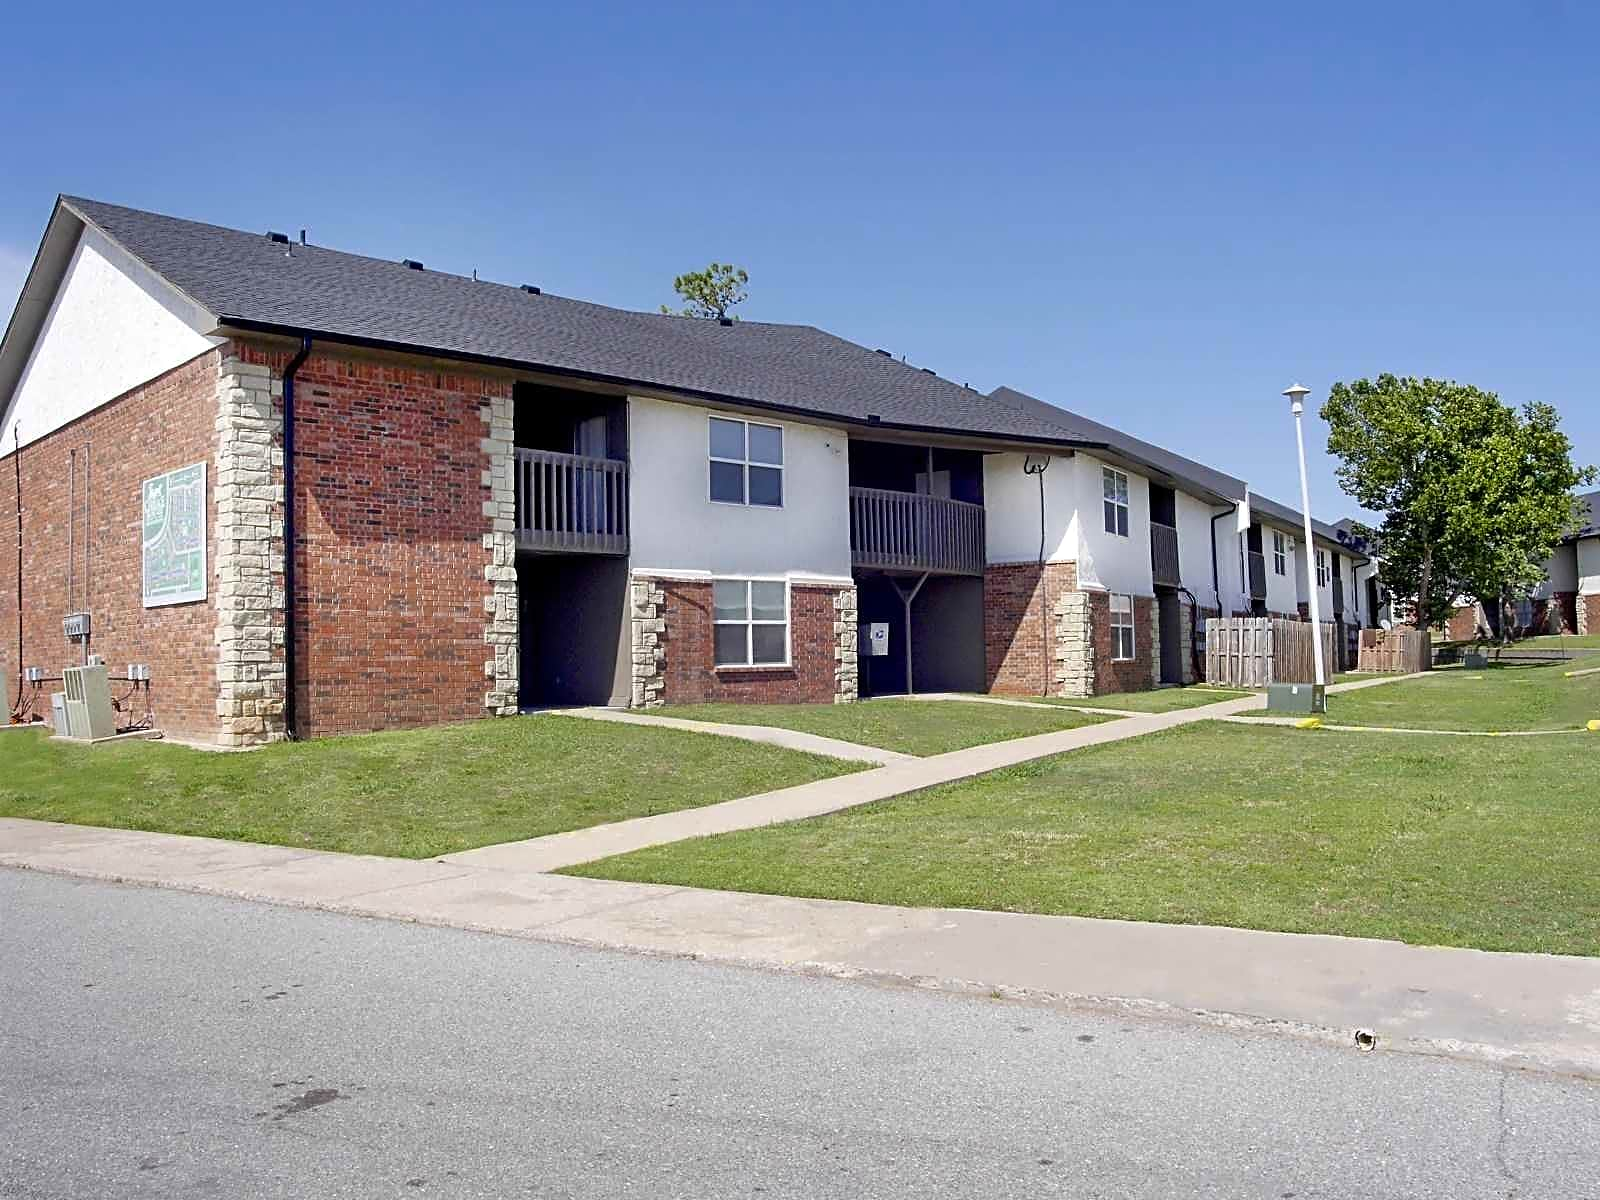 Carriage house apartments lawton ok 73501 for Carriage house garden apartments